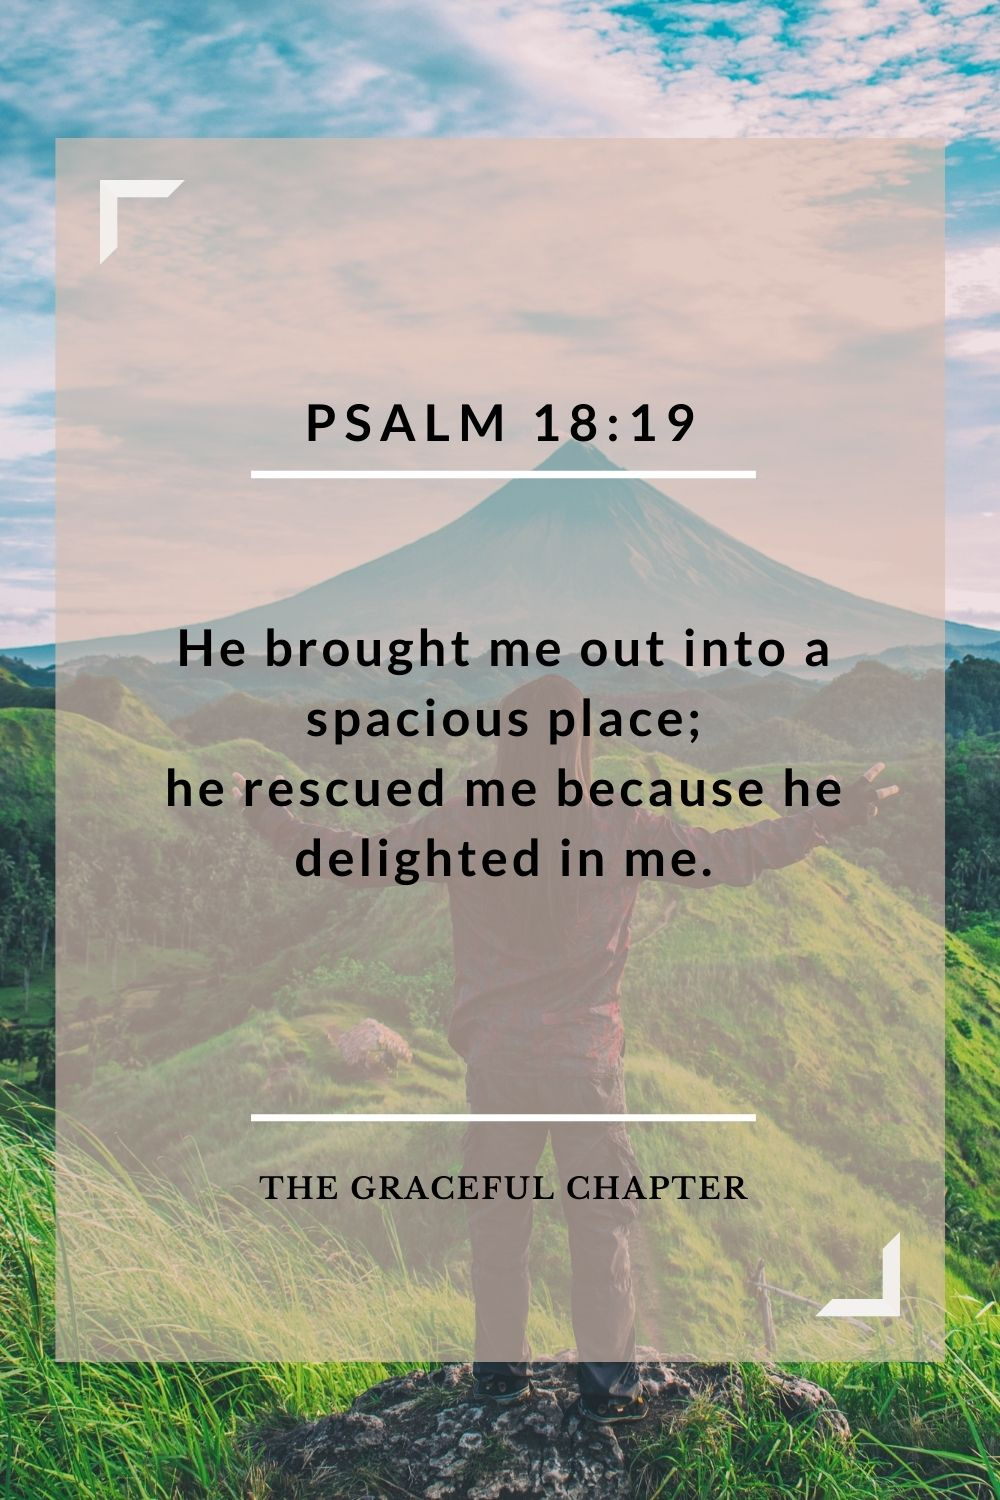 He brought me out into a spacious place; he rescued me because he delighted in me. Psalm 18:19